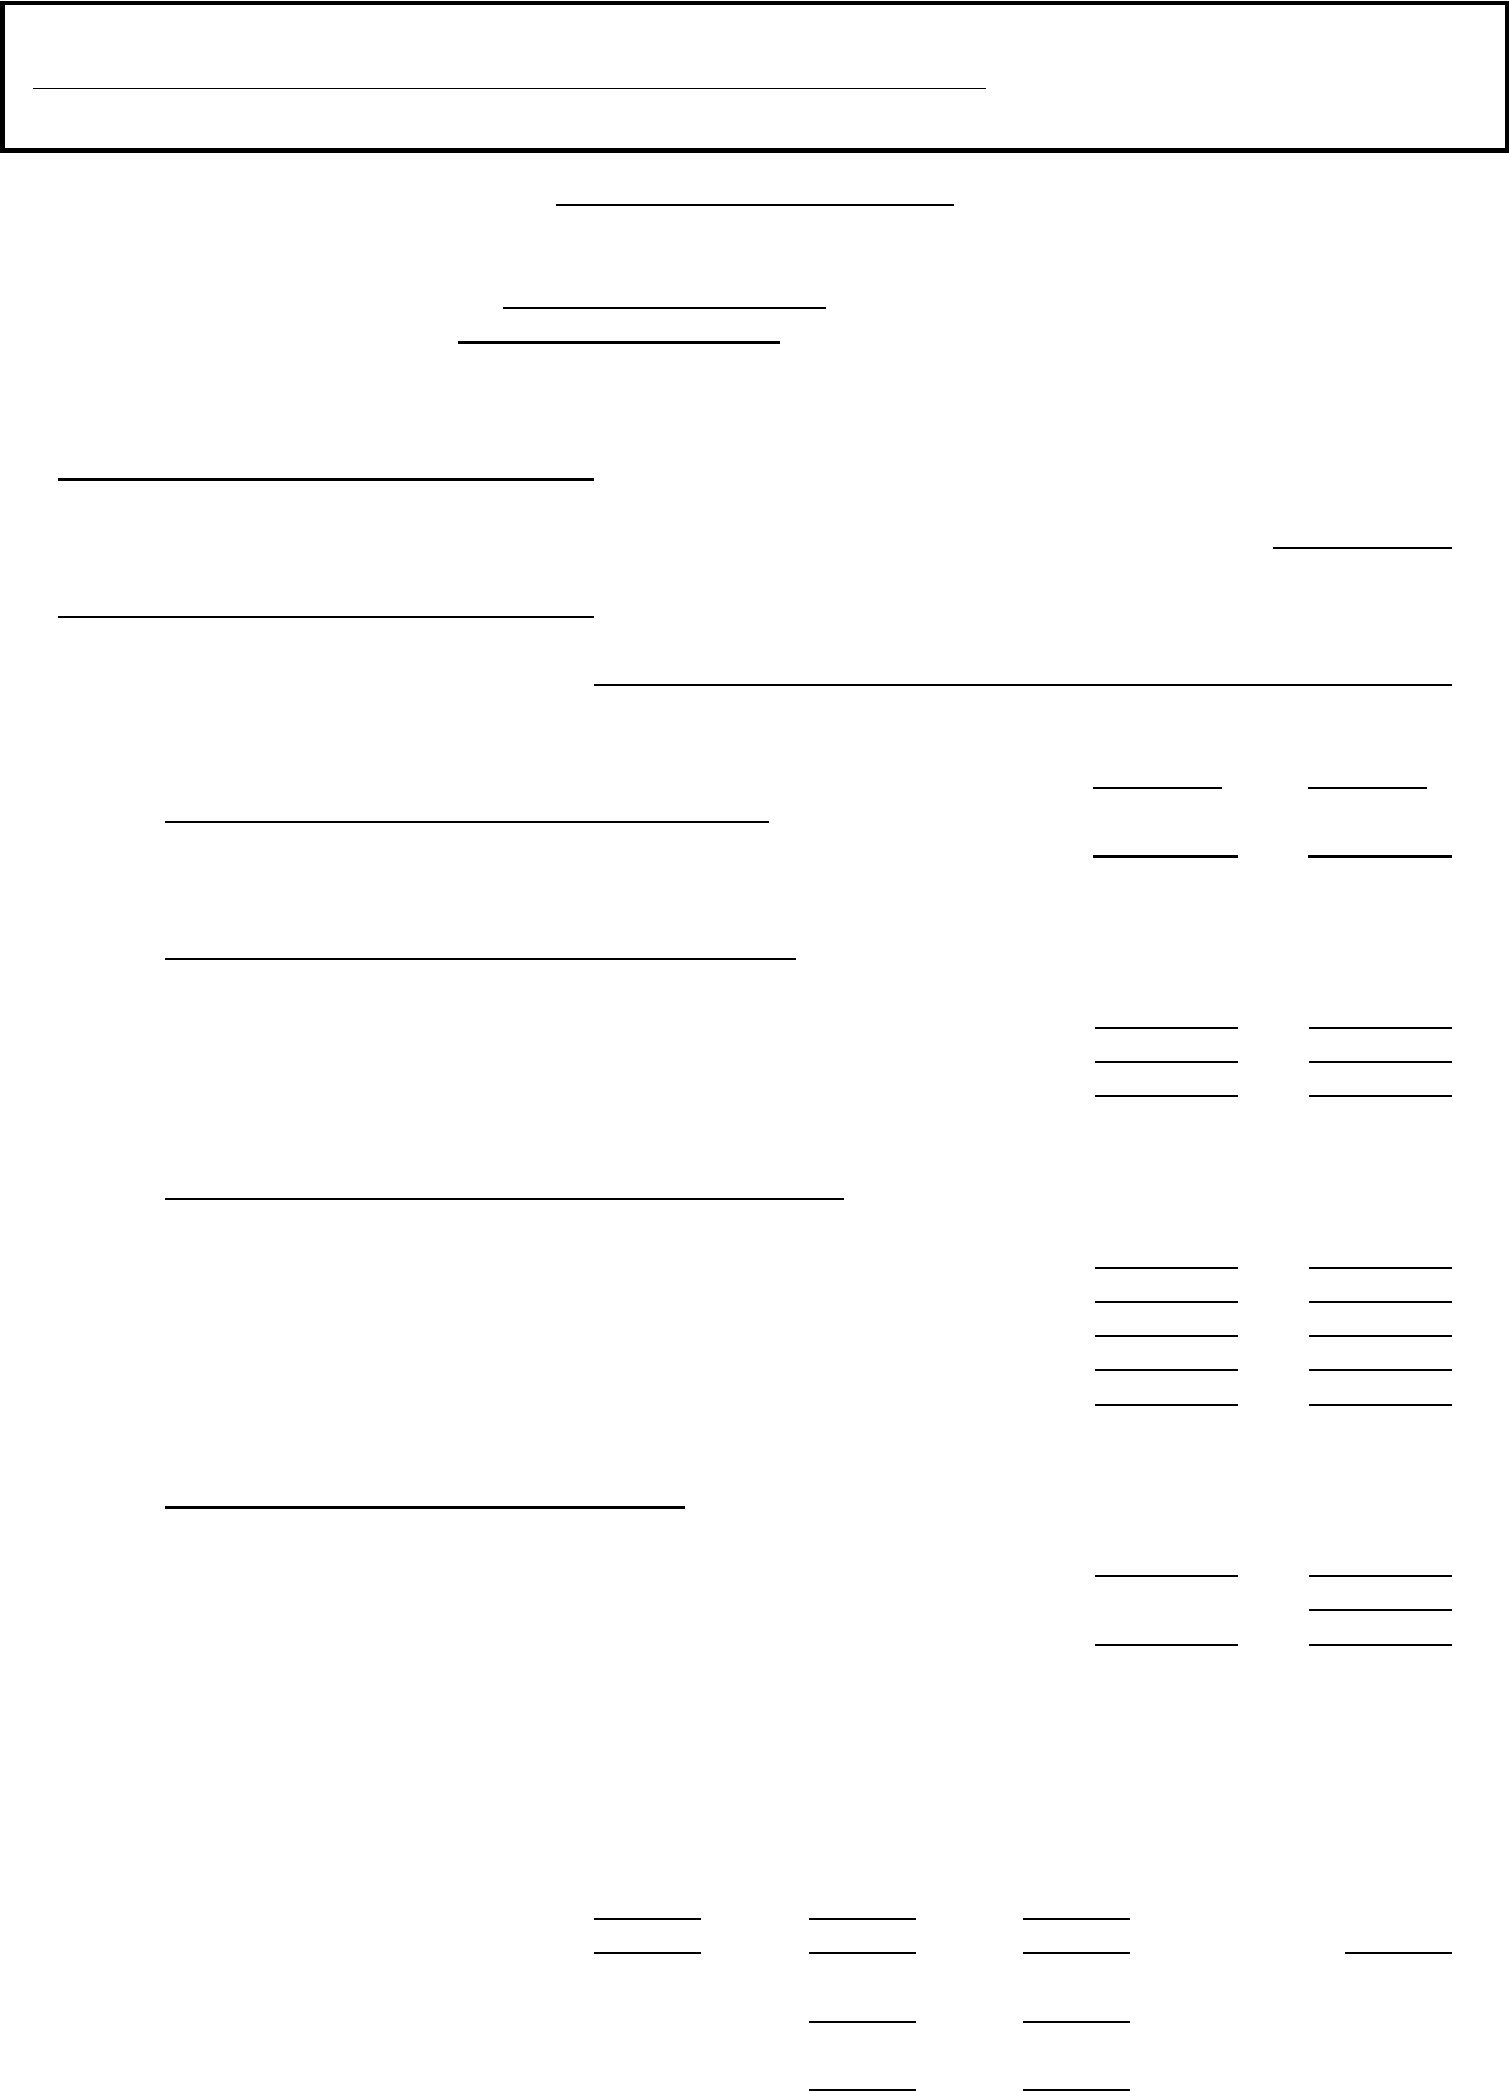 Printables Child Support Worksheet Kansas child support worksheet kansas free download